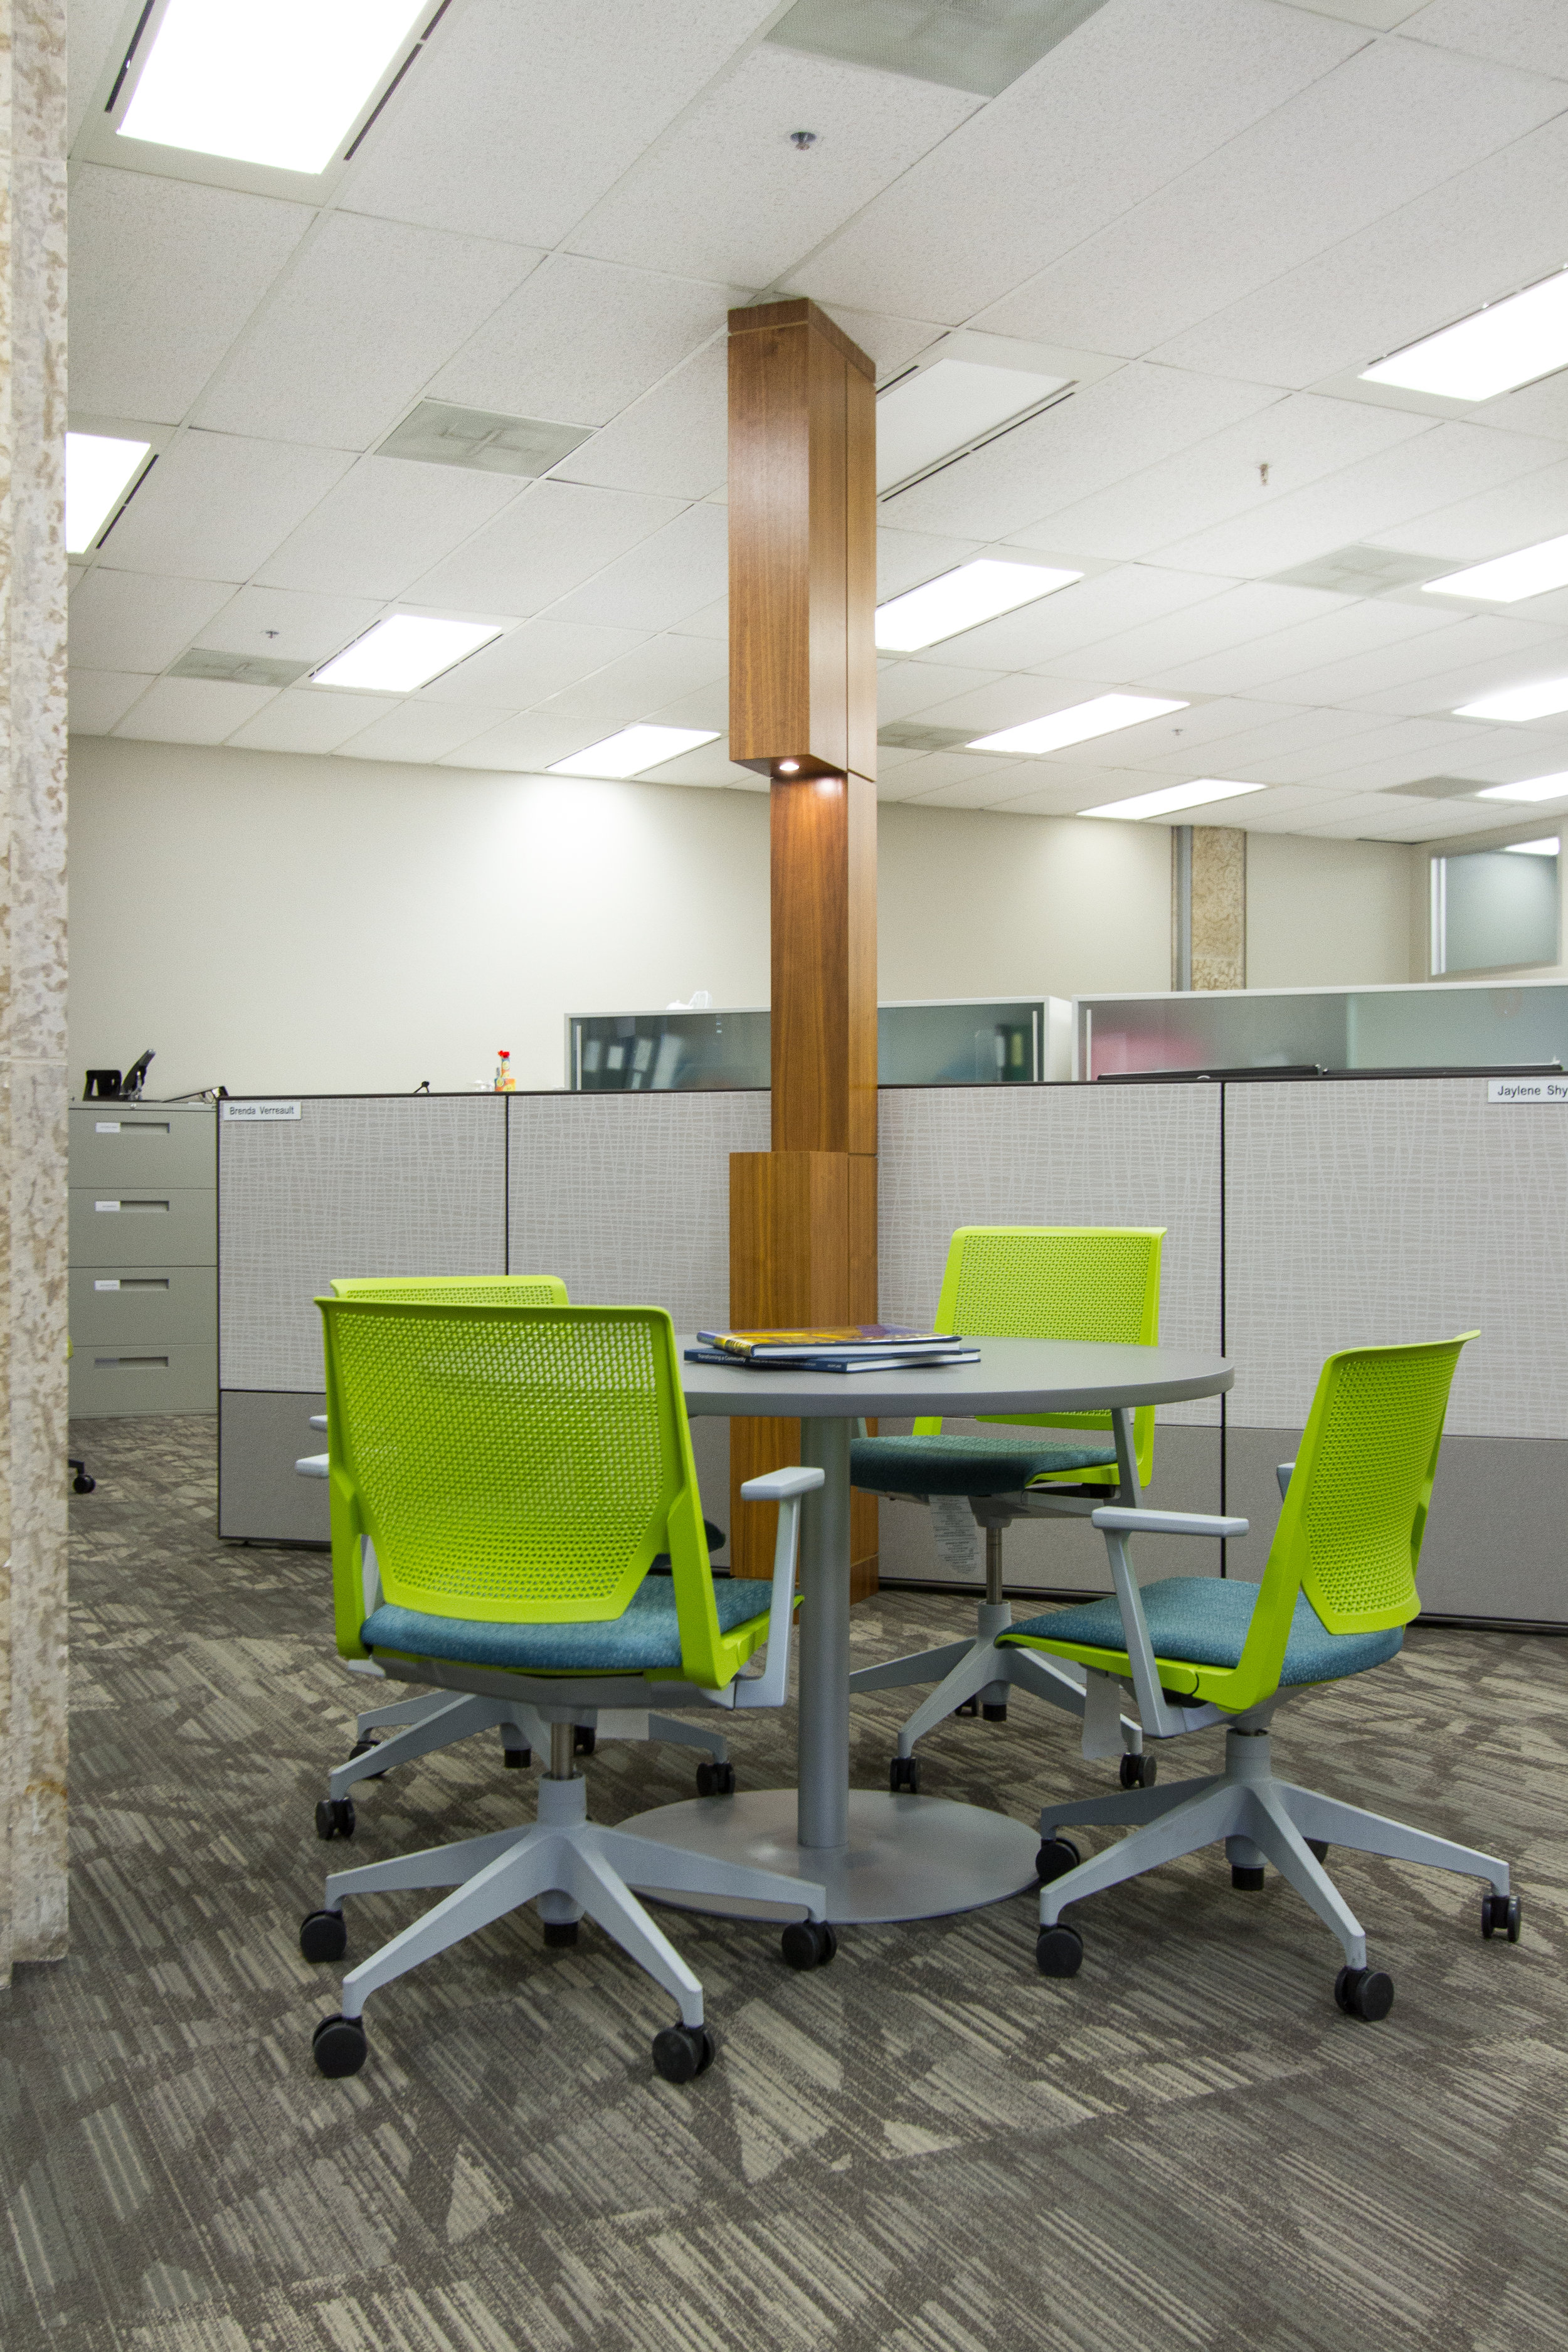 Break out meeting space